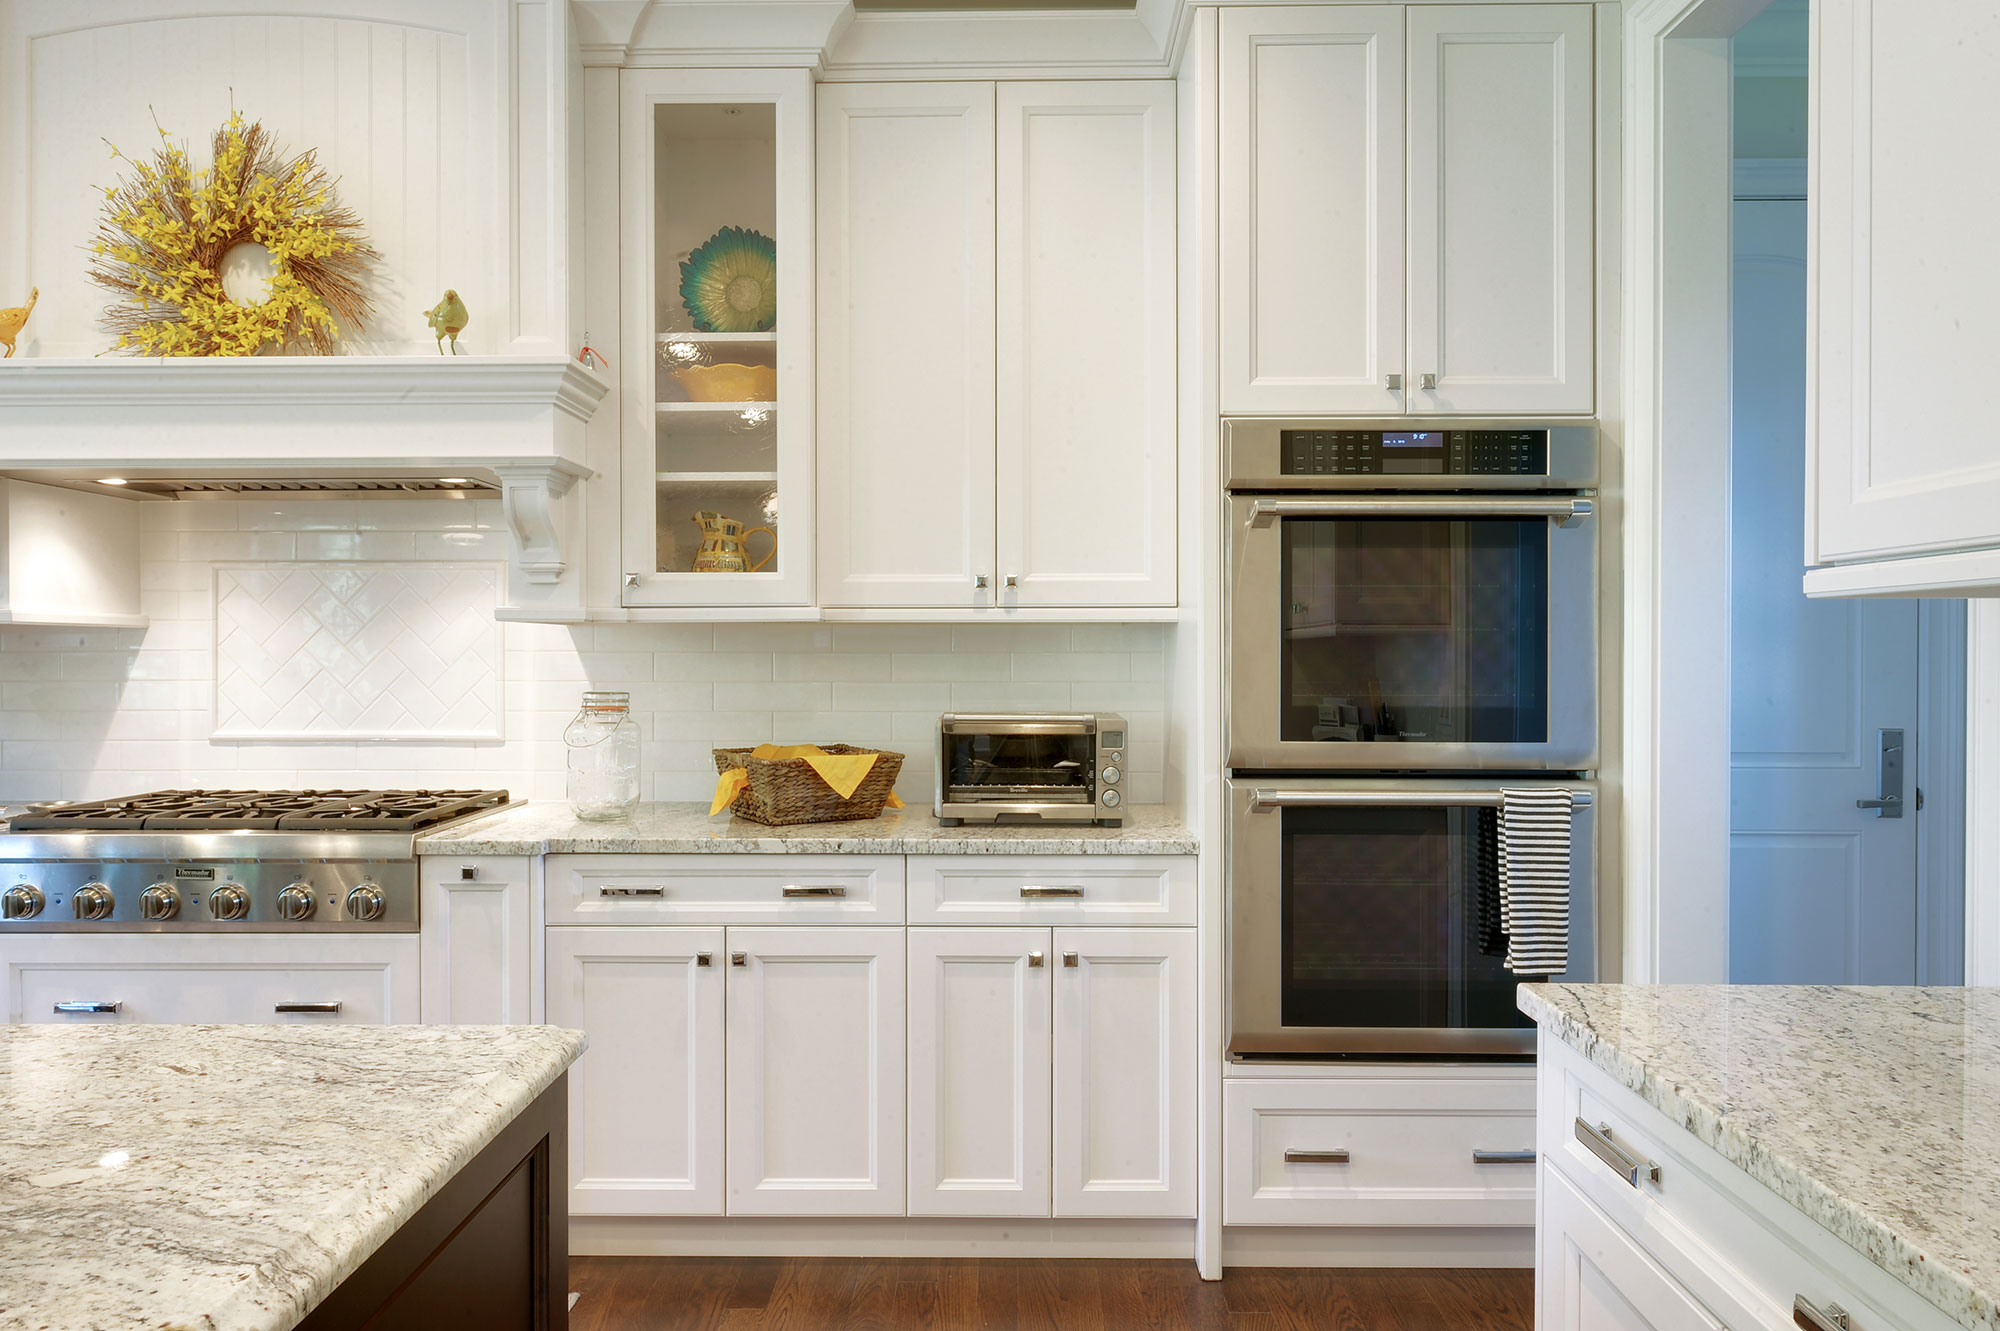 Kitchen Cabinets New Custom Homes Globex Developments Inc Custom Home Builders In Glenview New Construction House Building Professional Home Remodeling Projects Best Builder In Glenview